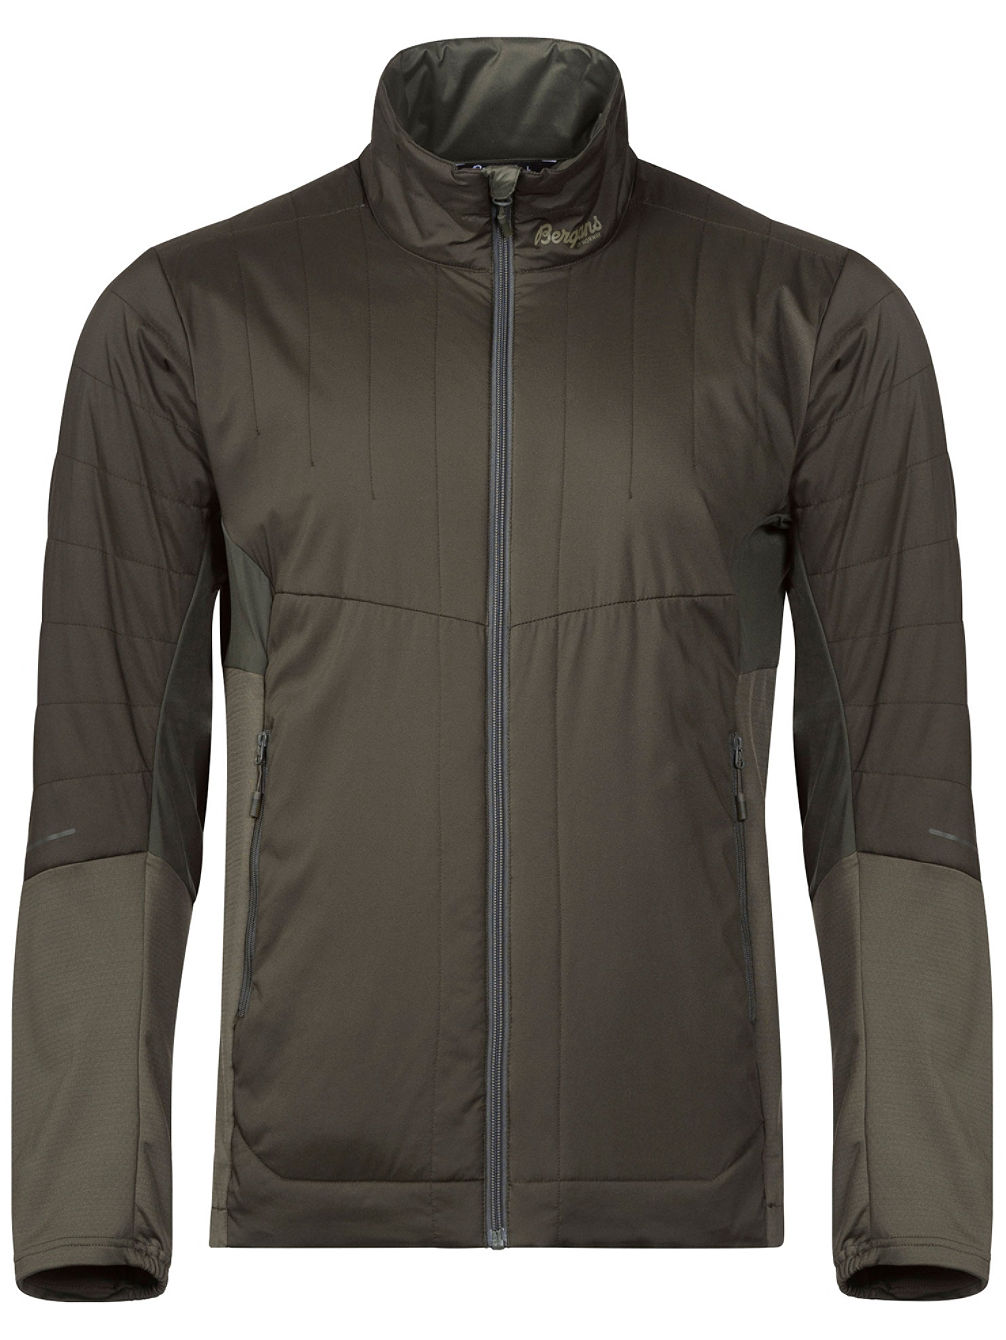 Floyen Light Insulated Outdoor Jacket